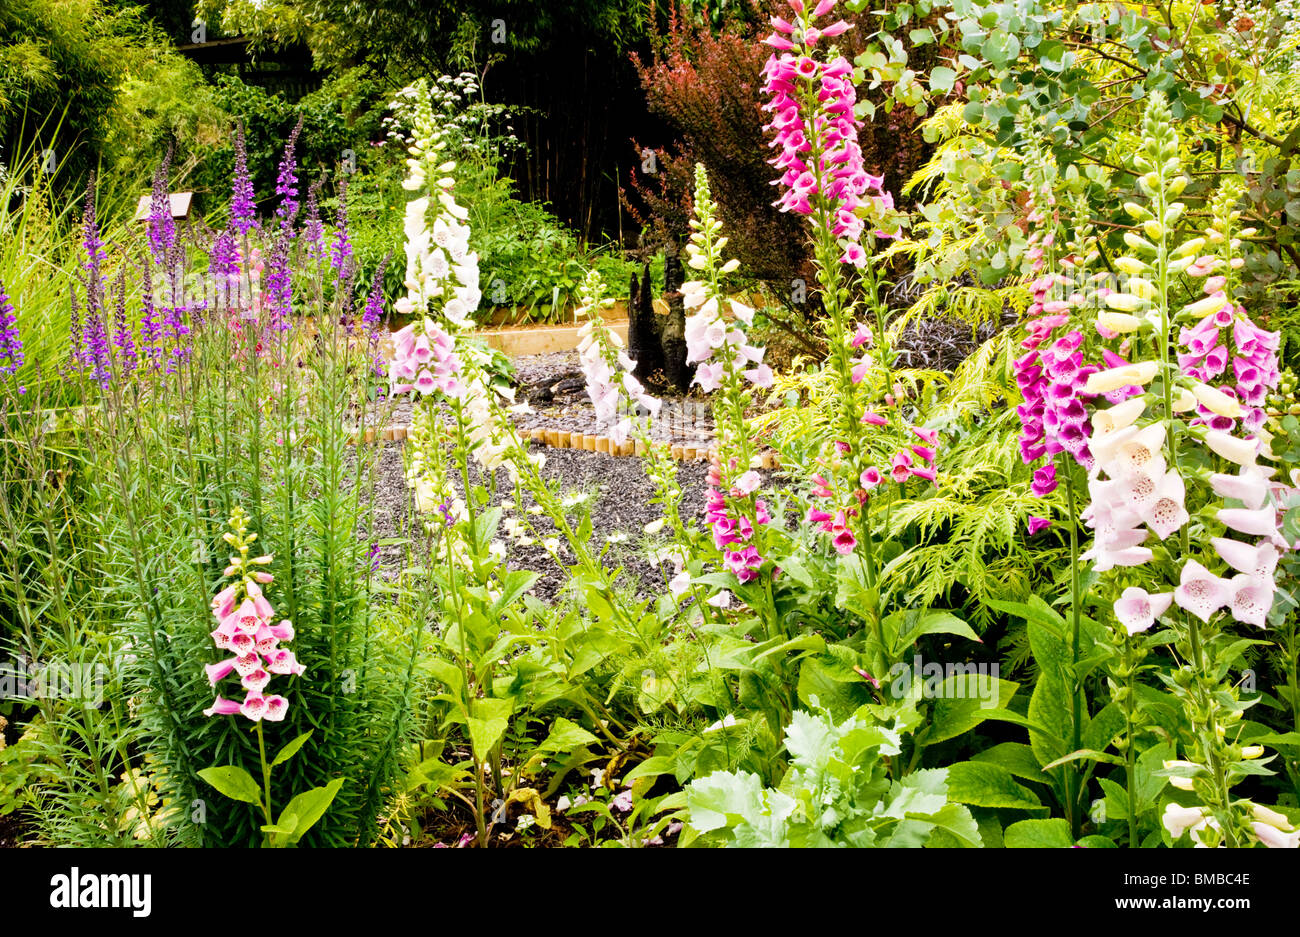 Foxgloves in the Path of Life Garden in the TWIGS gardens in Swindon, Wiltshire, England, UK - Stock Image